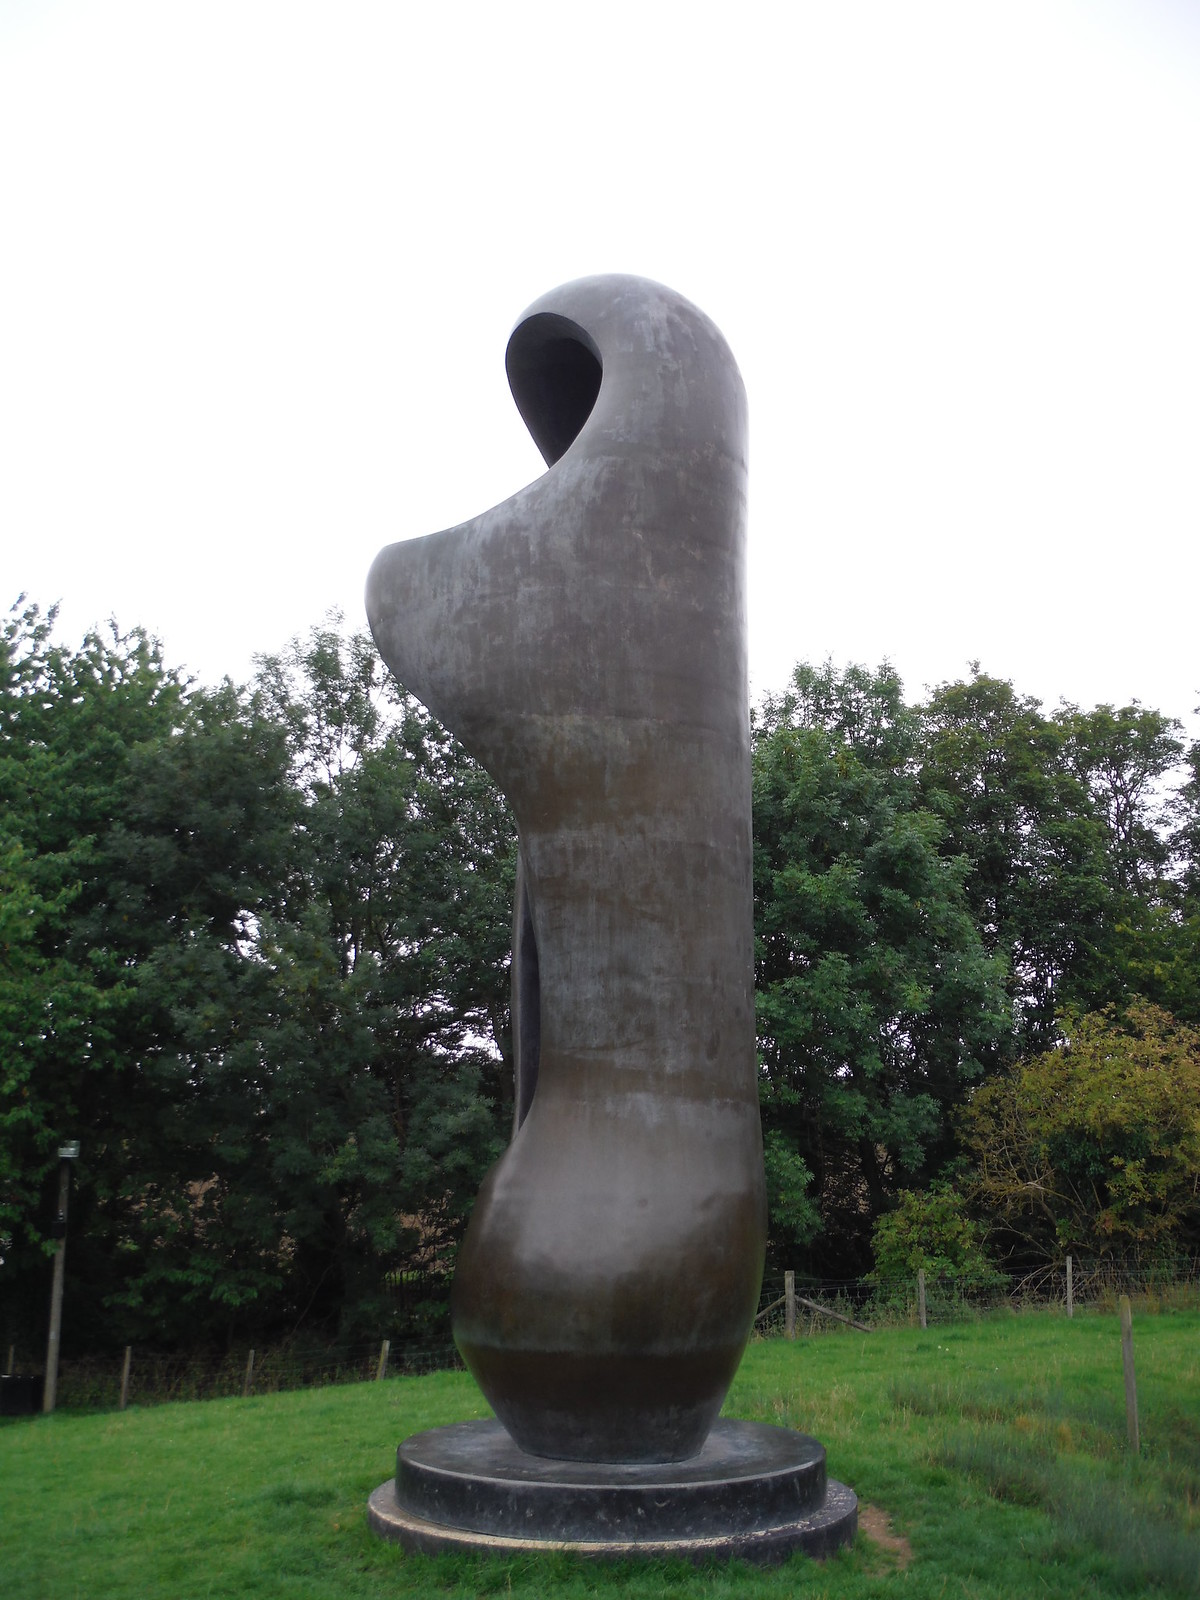 Large Upright Internal/External (1981-82), Sideview SWC Walk 164 Roydon to Sawbridgeworth via Henry Moore Foundation